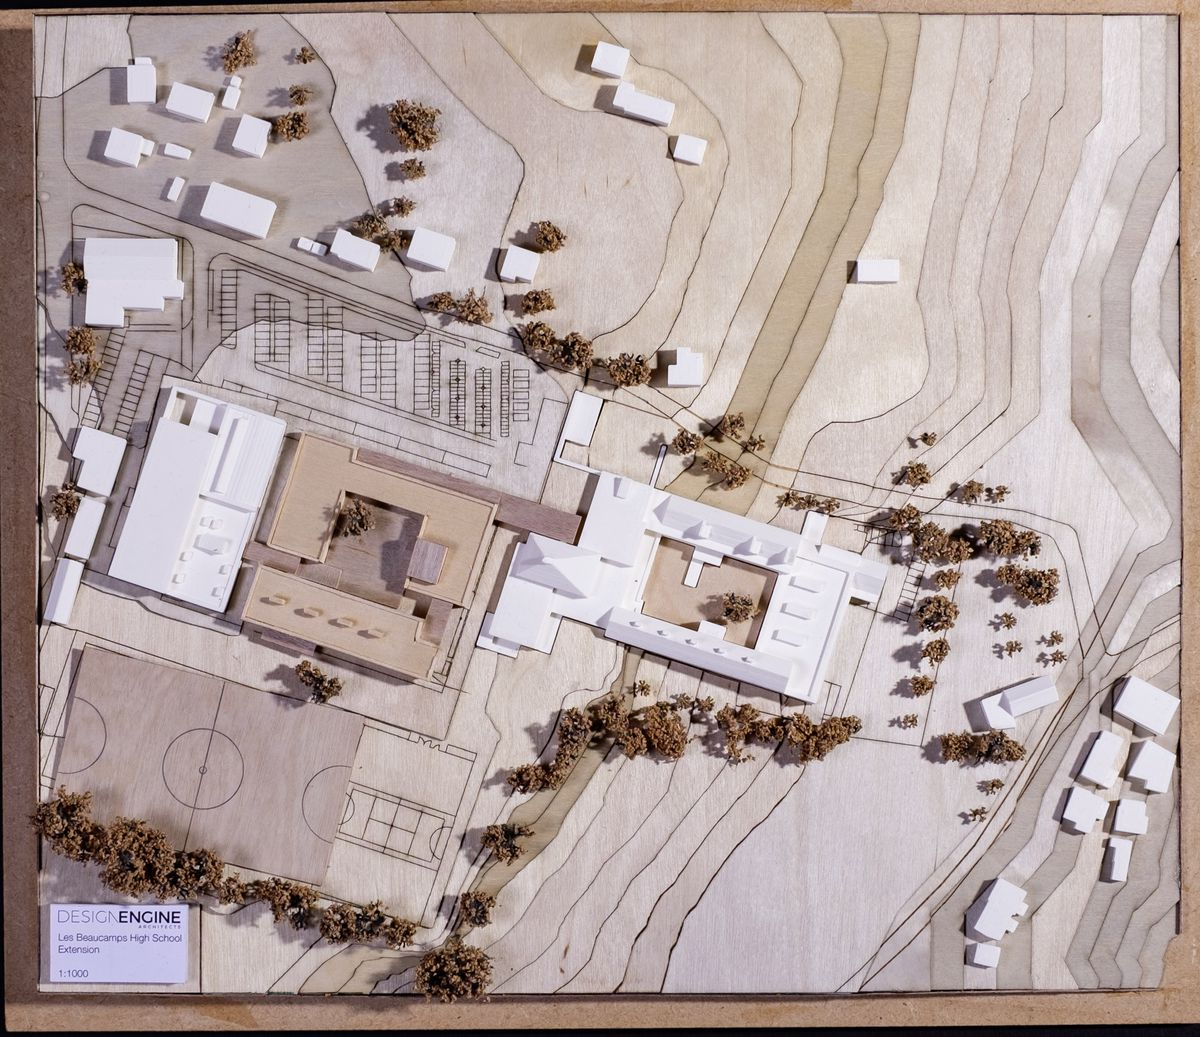 Picture supplied by Design Engine Architects for the expansion of Les Beaucamps High School.